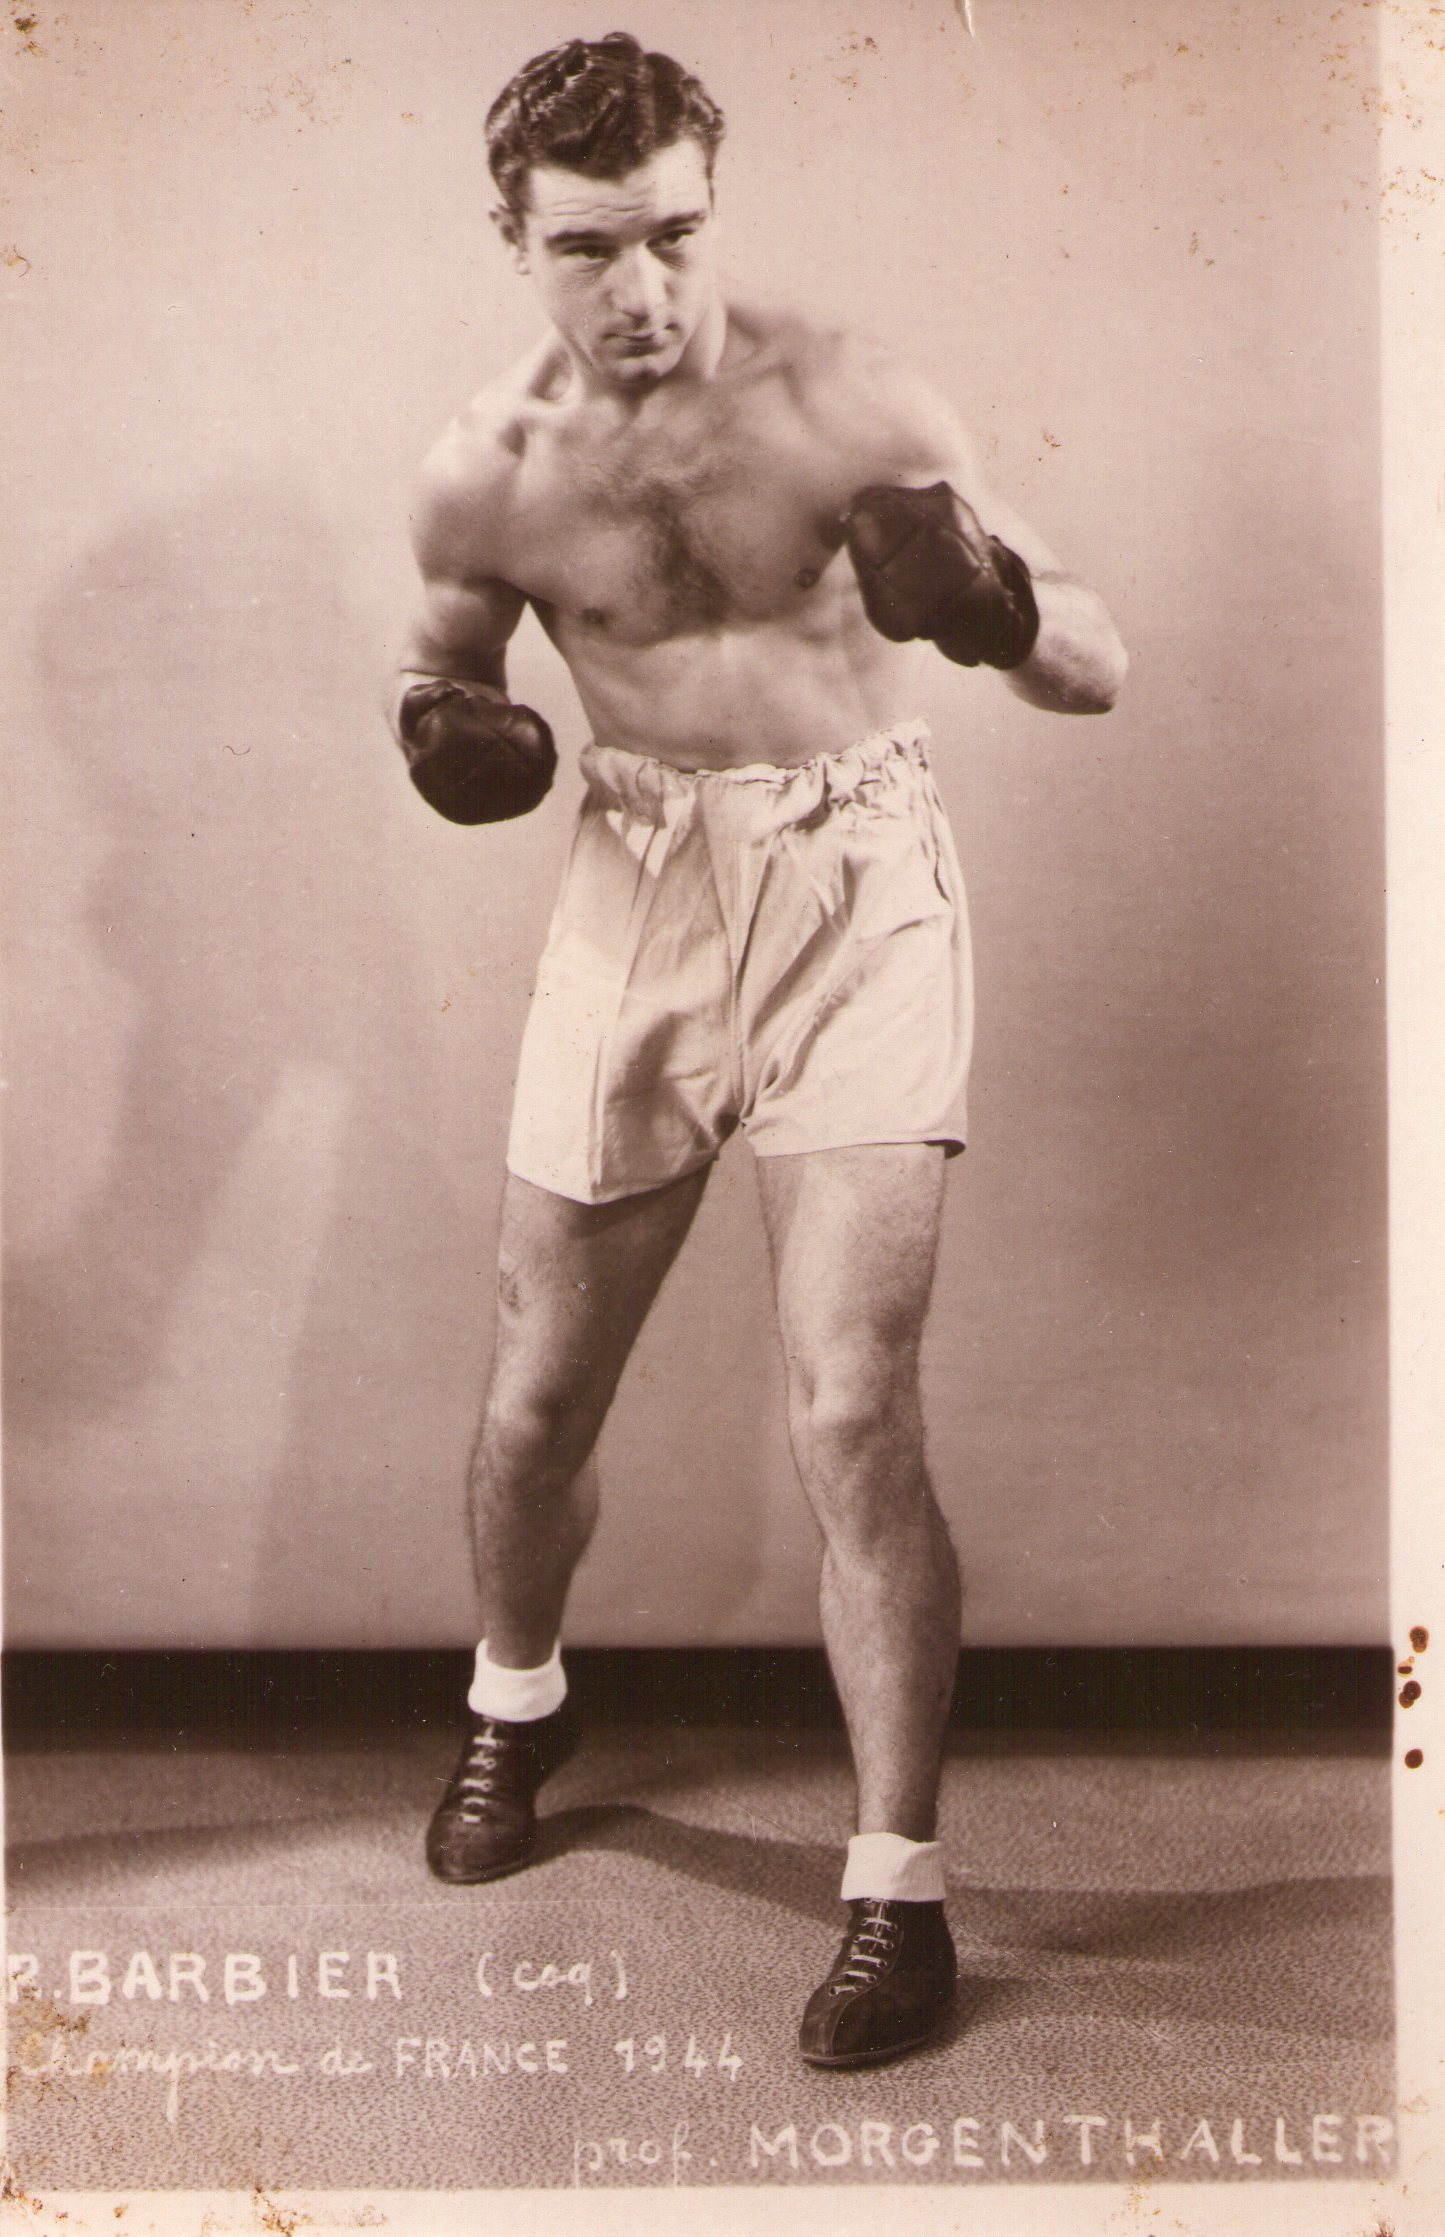 Marcel BARBIER - Champion de France 1943-44 photo 1.jpg